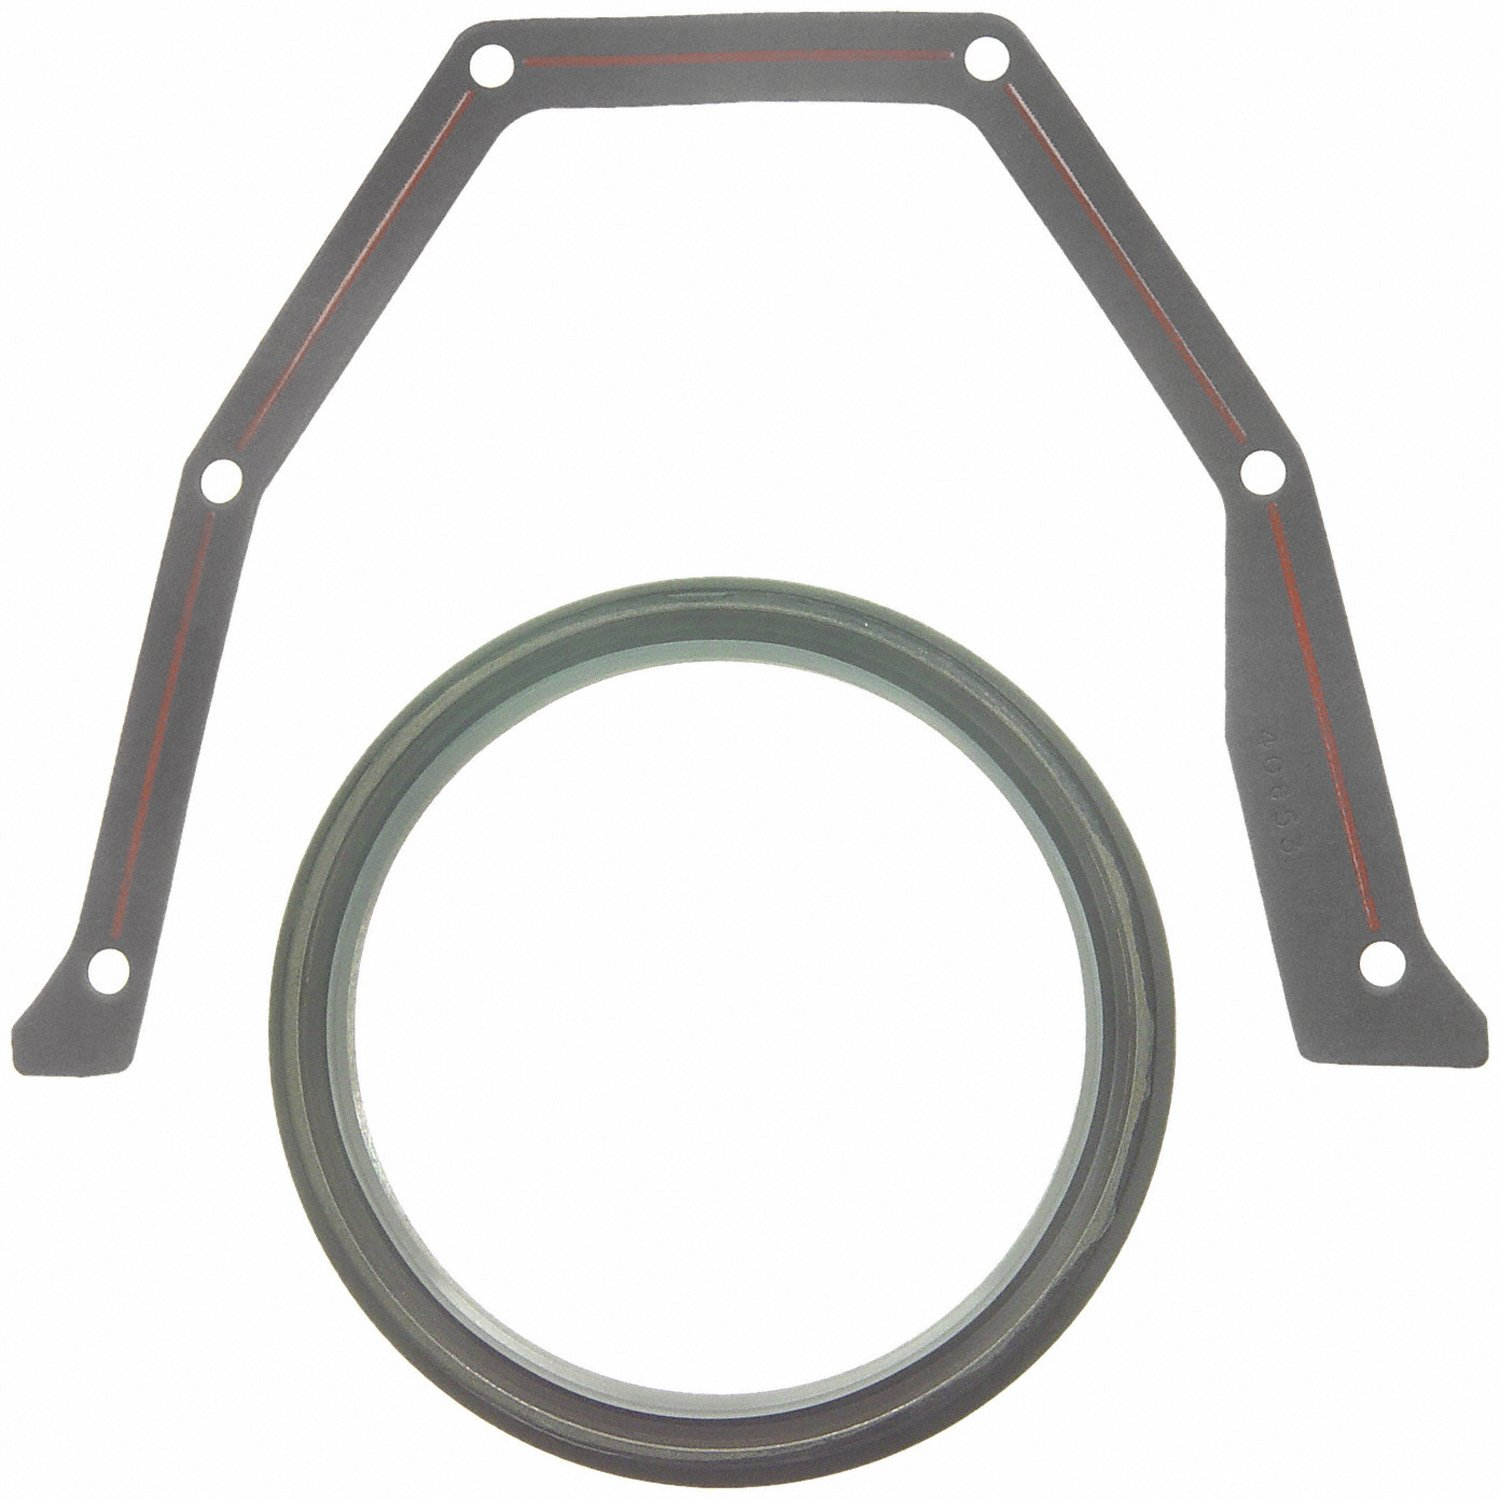 Fel-Pro BS 40650 Rear Main Seal Set